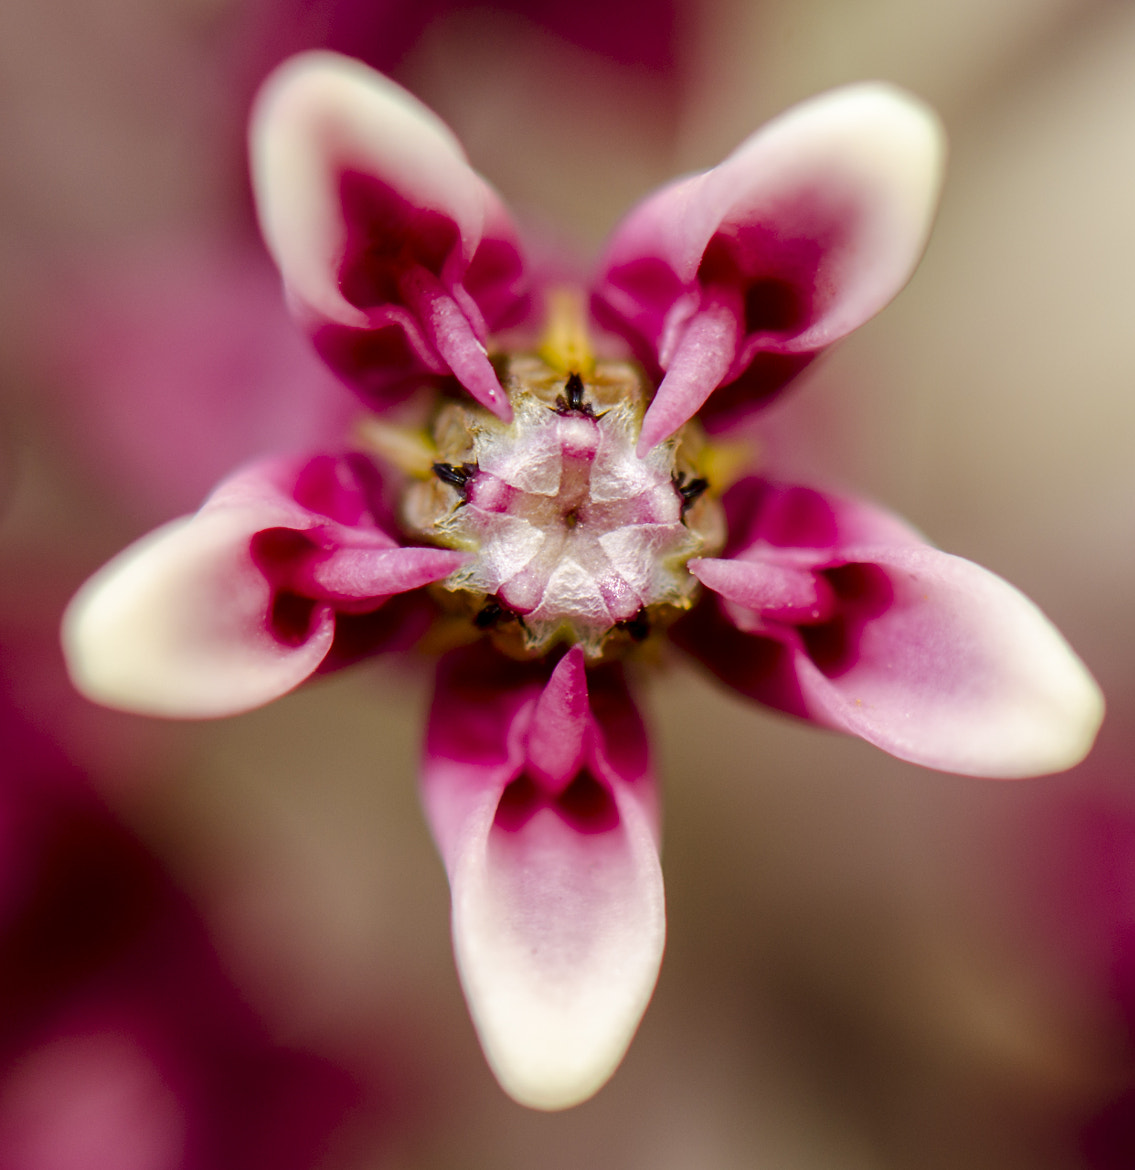 Photograph Alien Flower by Rusty Parkhurst on 500px